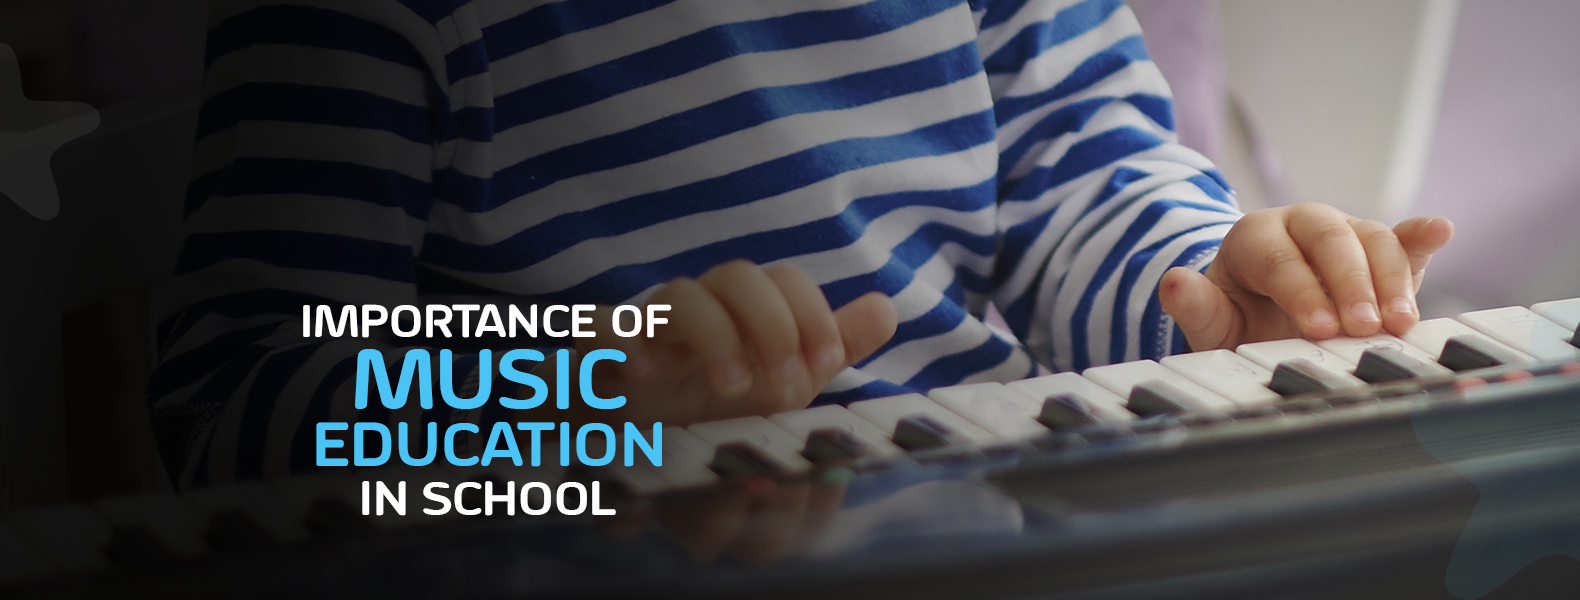 Importance of Music Education in School